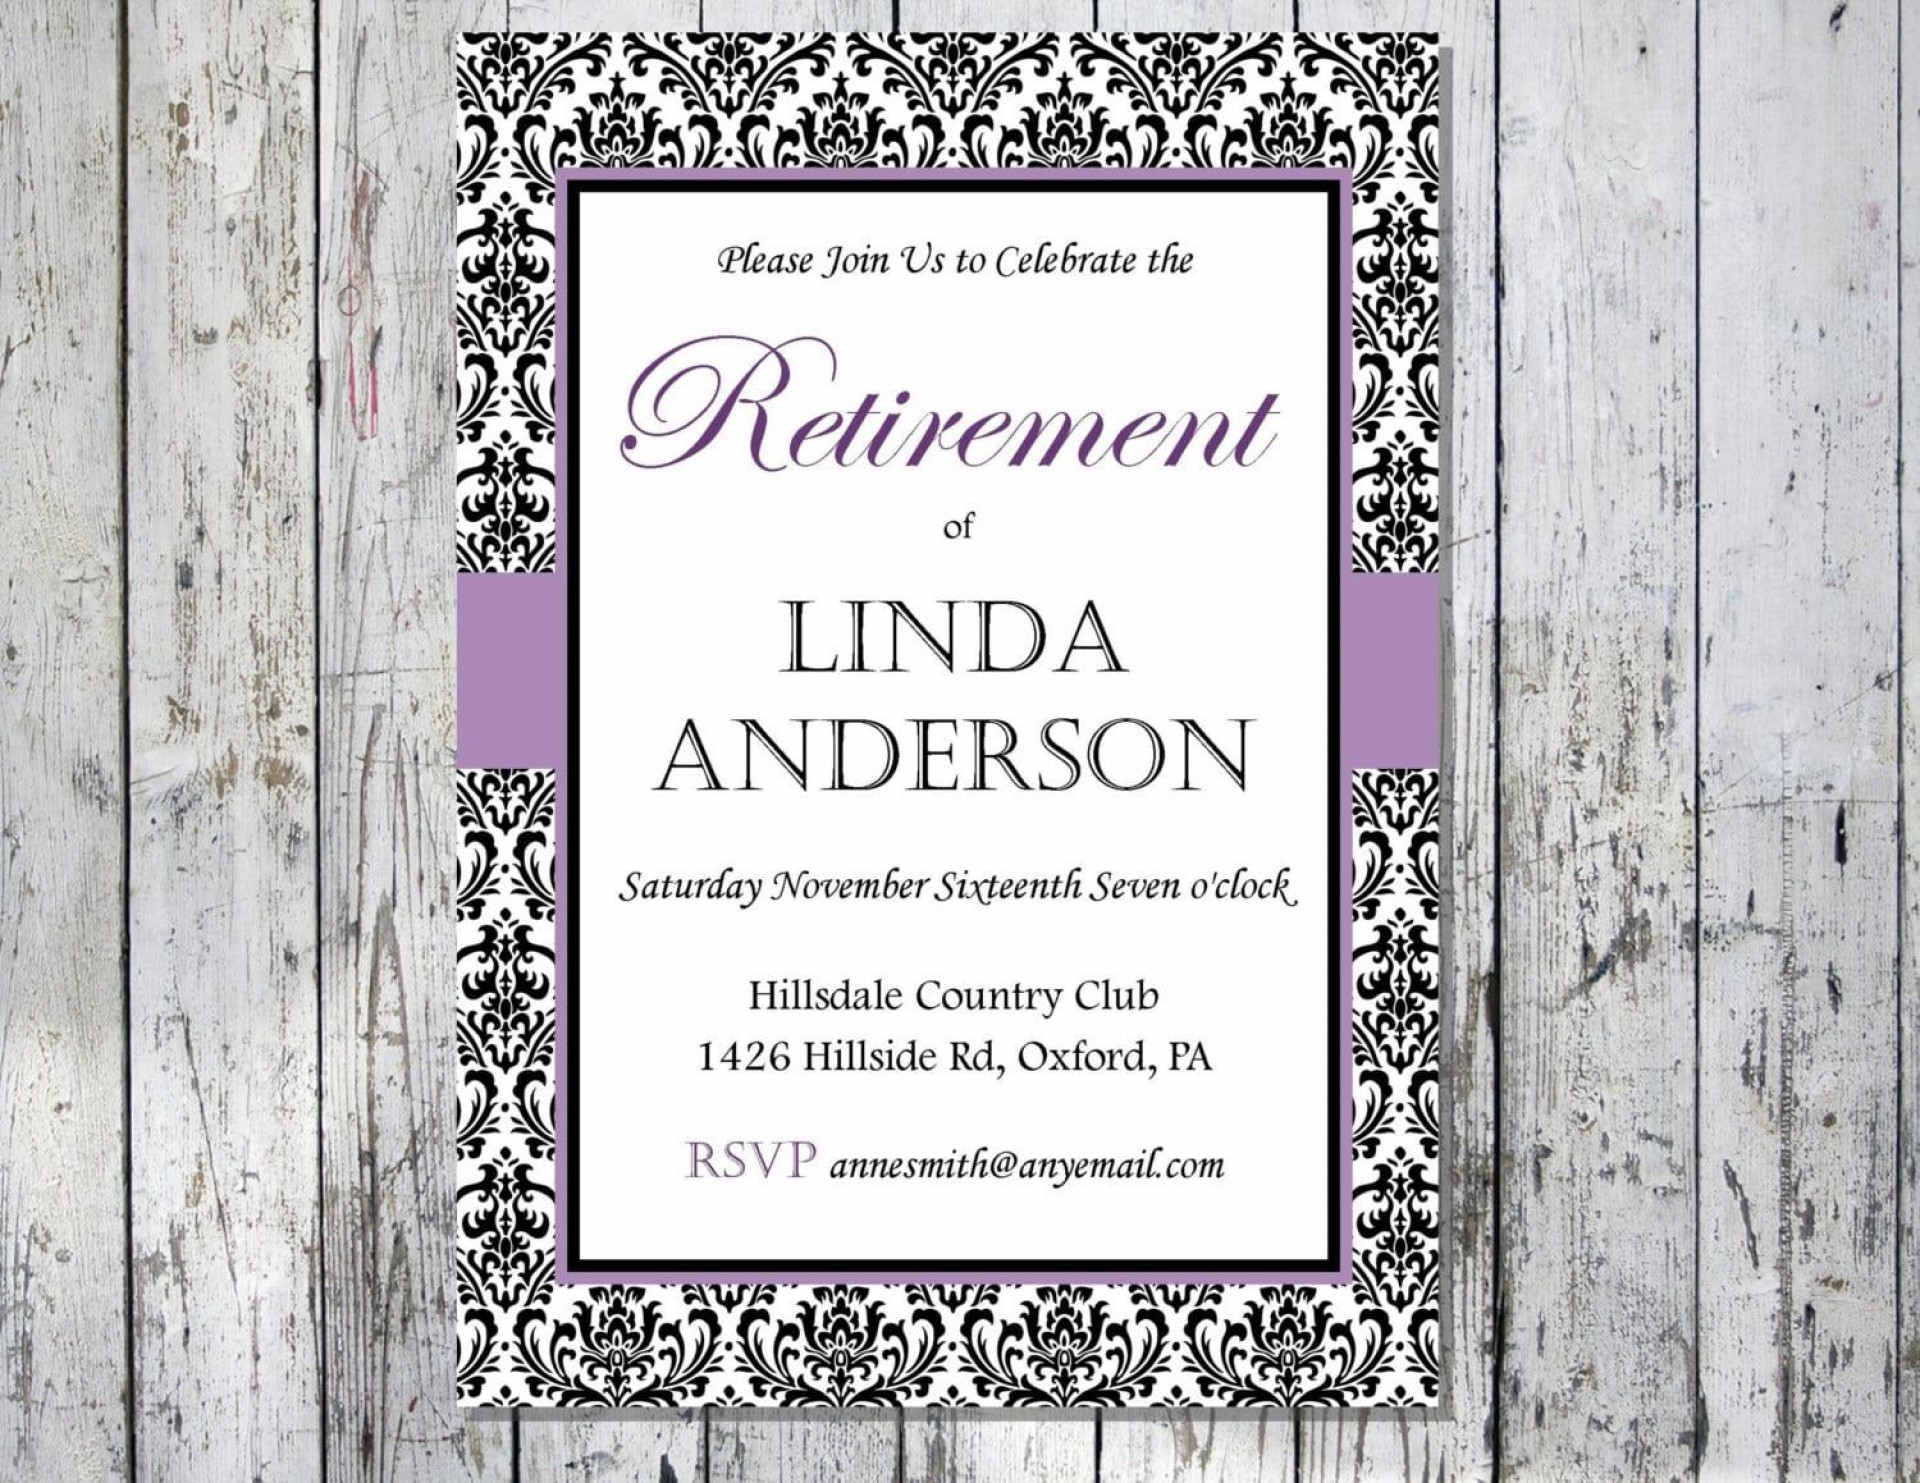 008 Unusual Retirement Party Invitation Template Free Printable High Def 1920